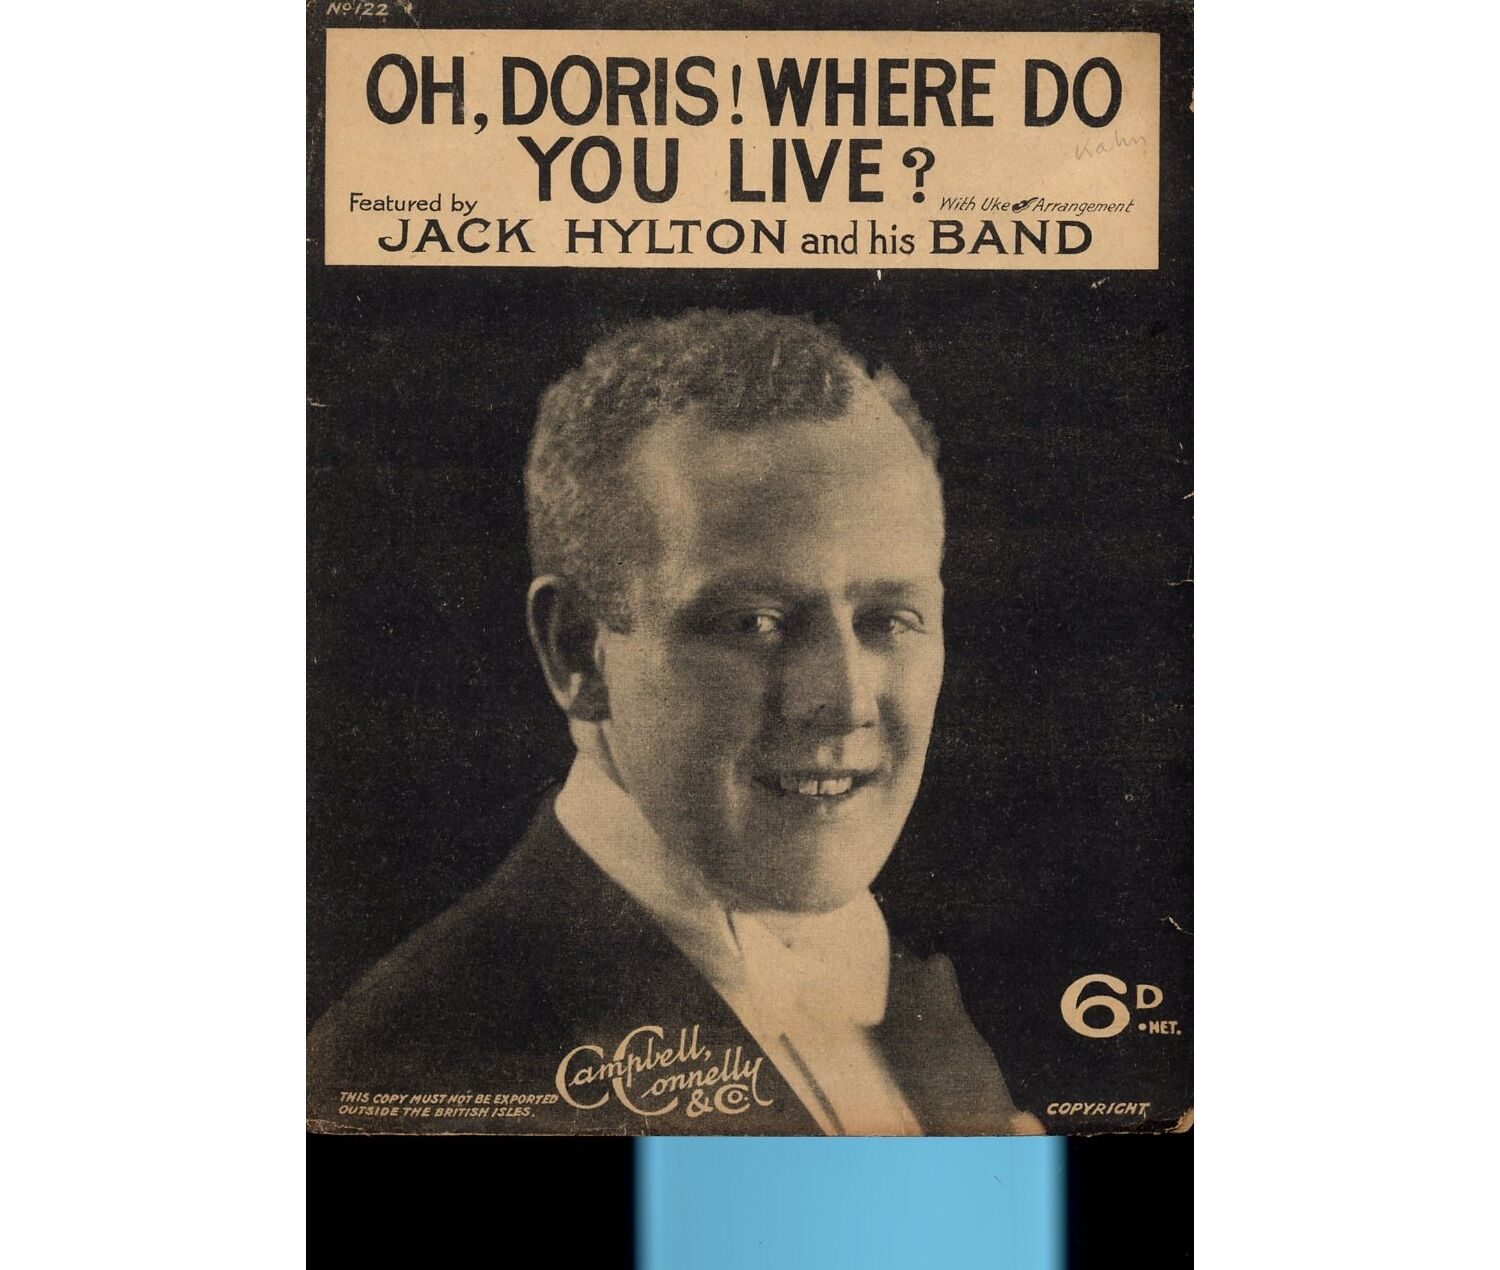 Oh Doris Where Do You Live Song Featuring Jack Hylton Only 8 00 Discover why i live and die. oh doris where do you live song featuring jack hylton only 8 00